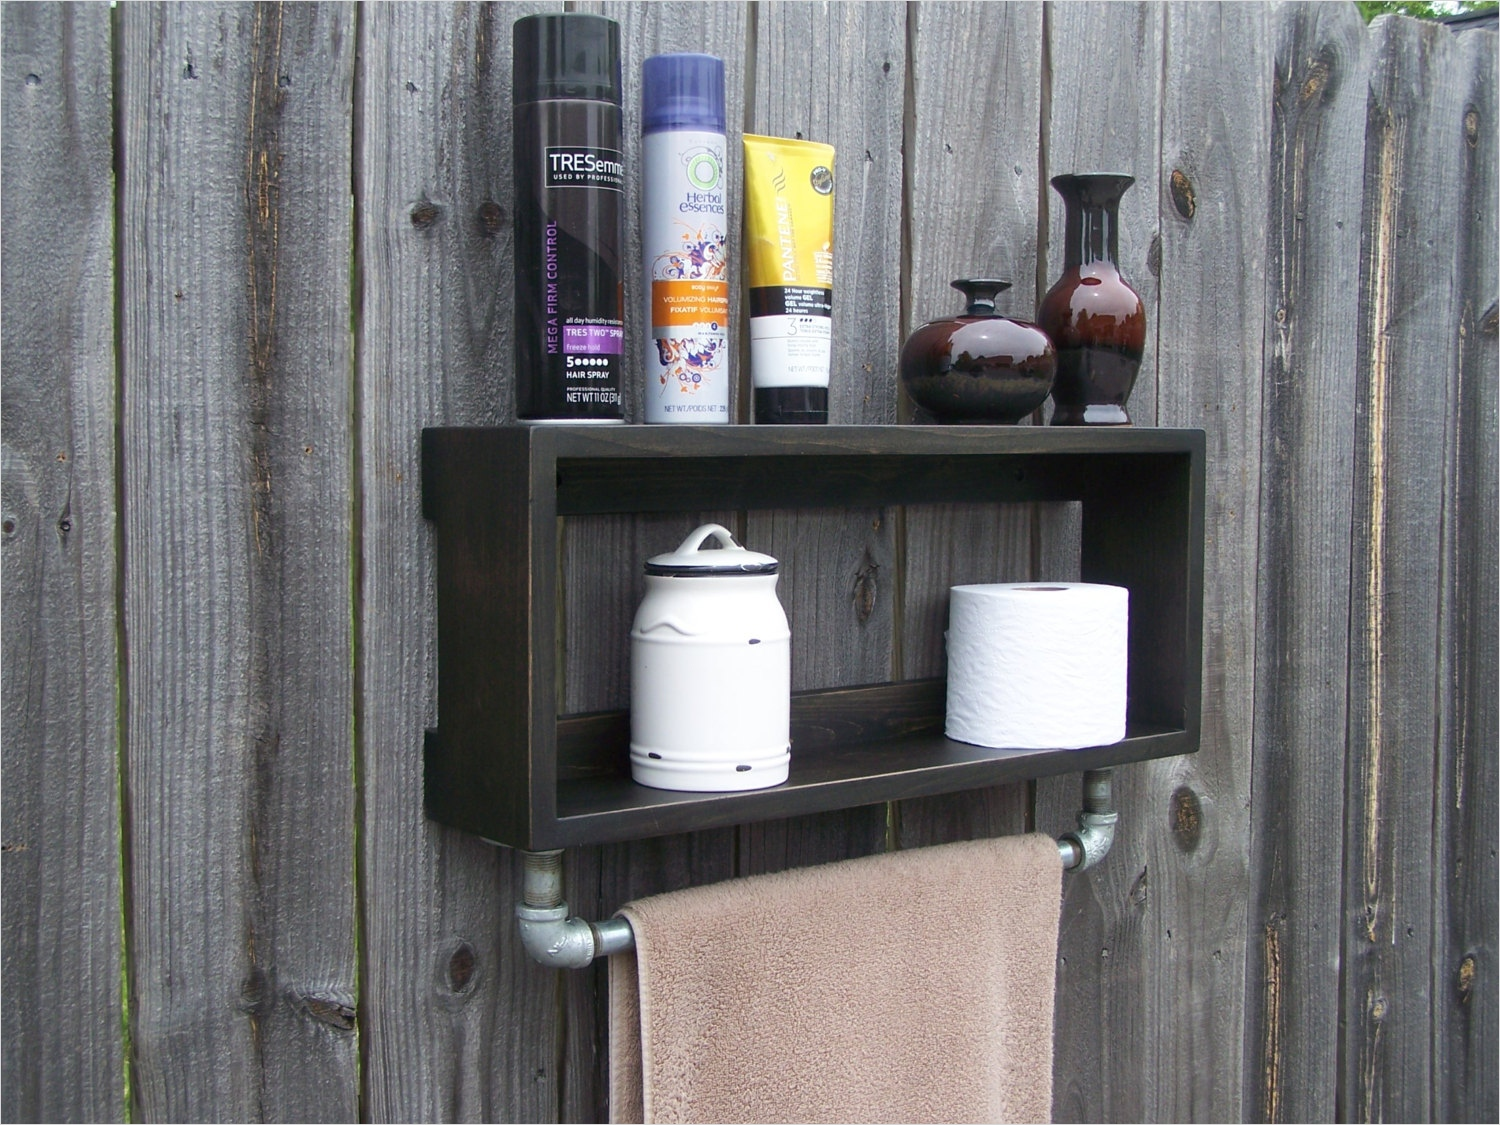 44 Creative Ideas Rustic Bathroom Walls Shelf 69 Industrial Rustic Bathroom Wall Shelf with 18 Inch Metal towel 5